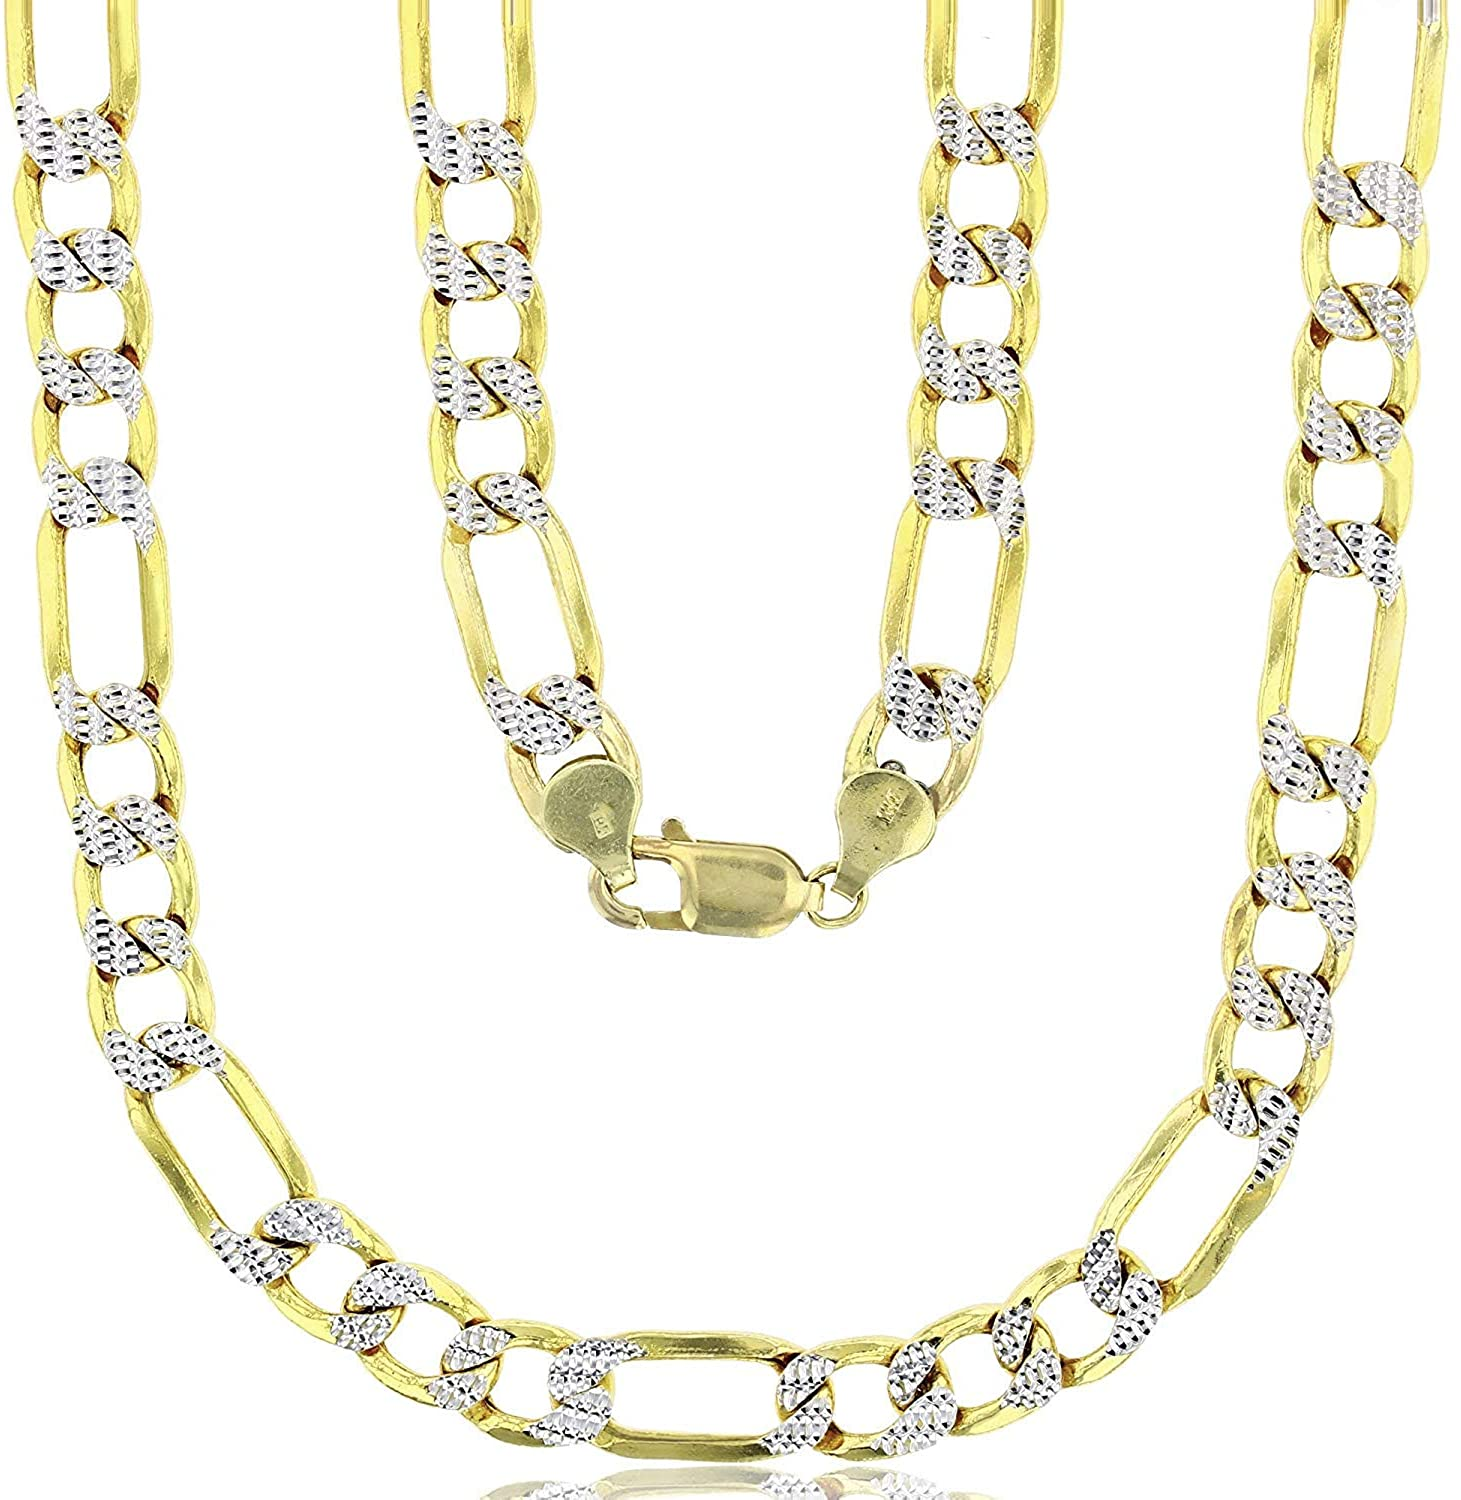 14k Two Tone Gold Solid 9.10mm Figaro Chain with Lobster Claw Clasp | 8.50